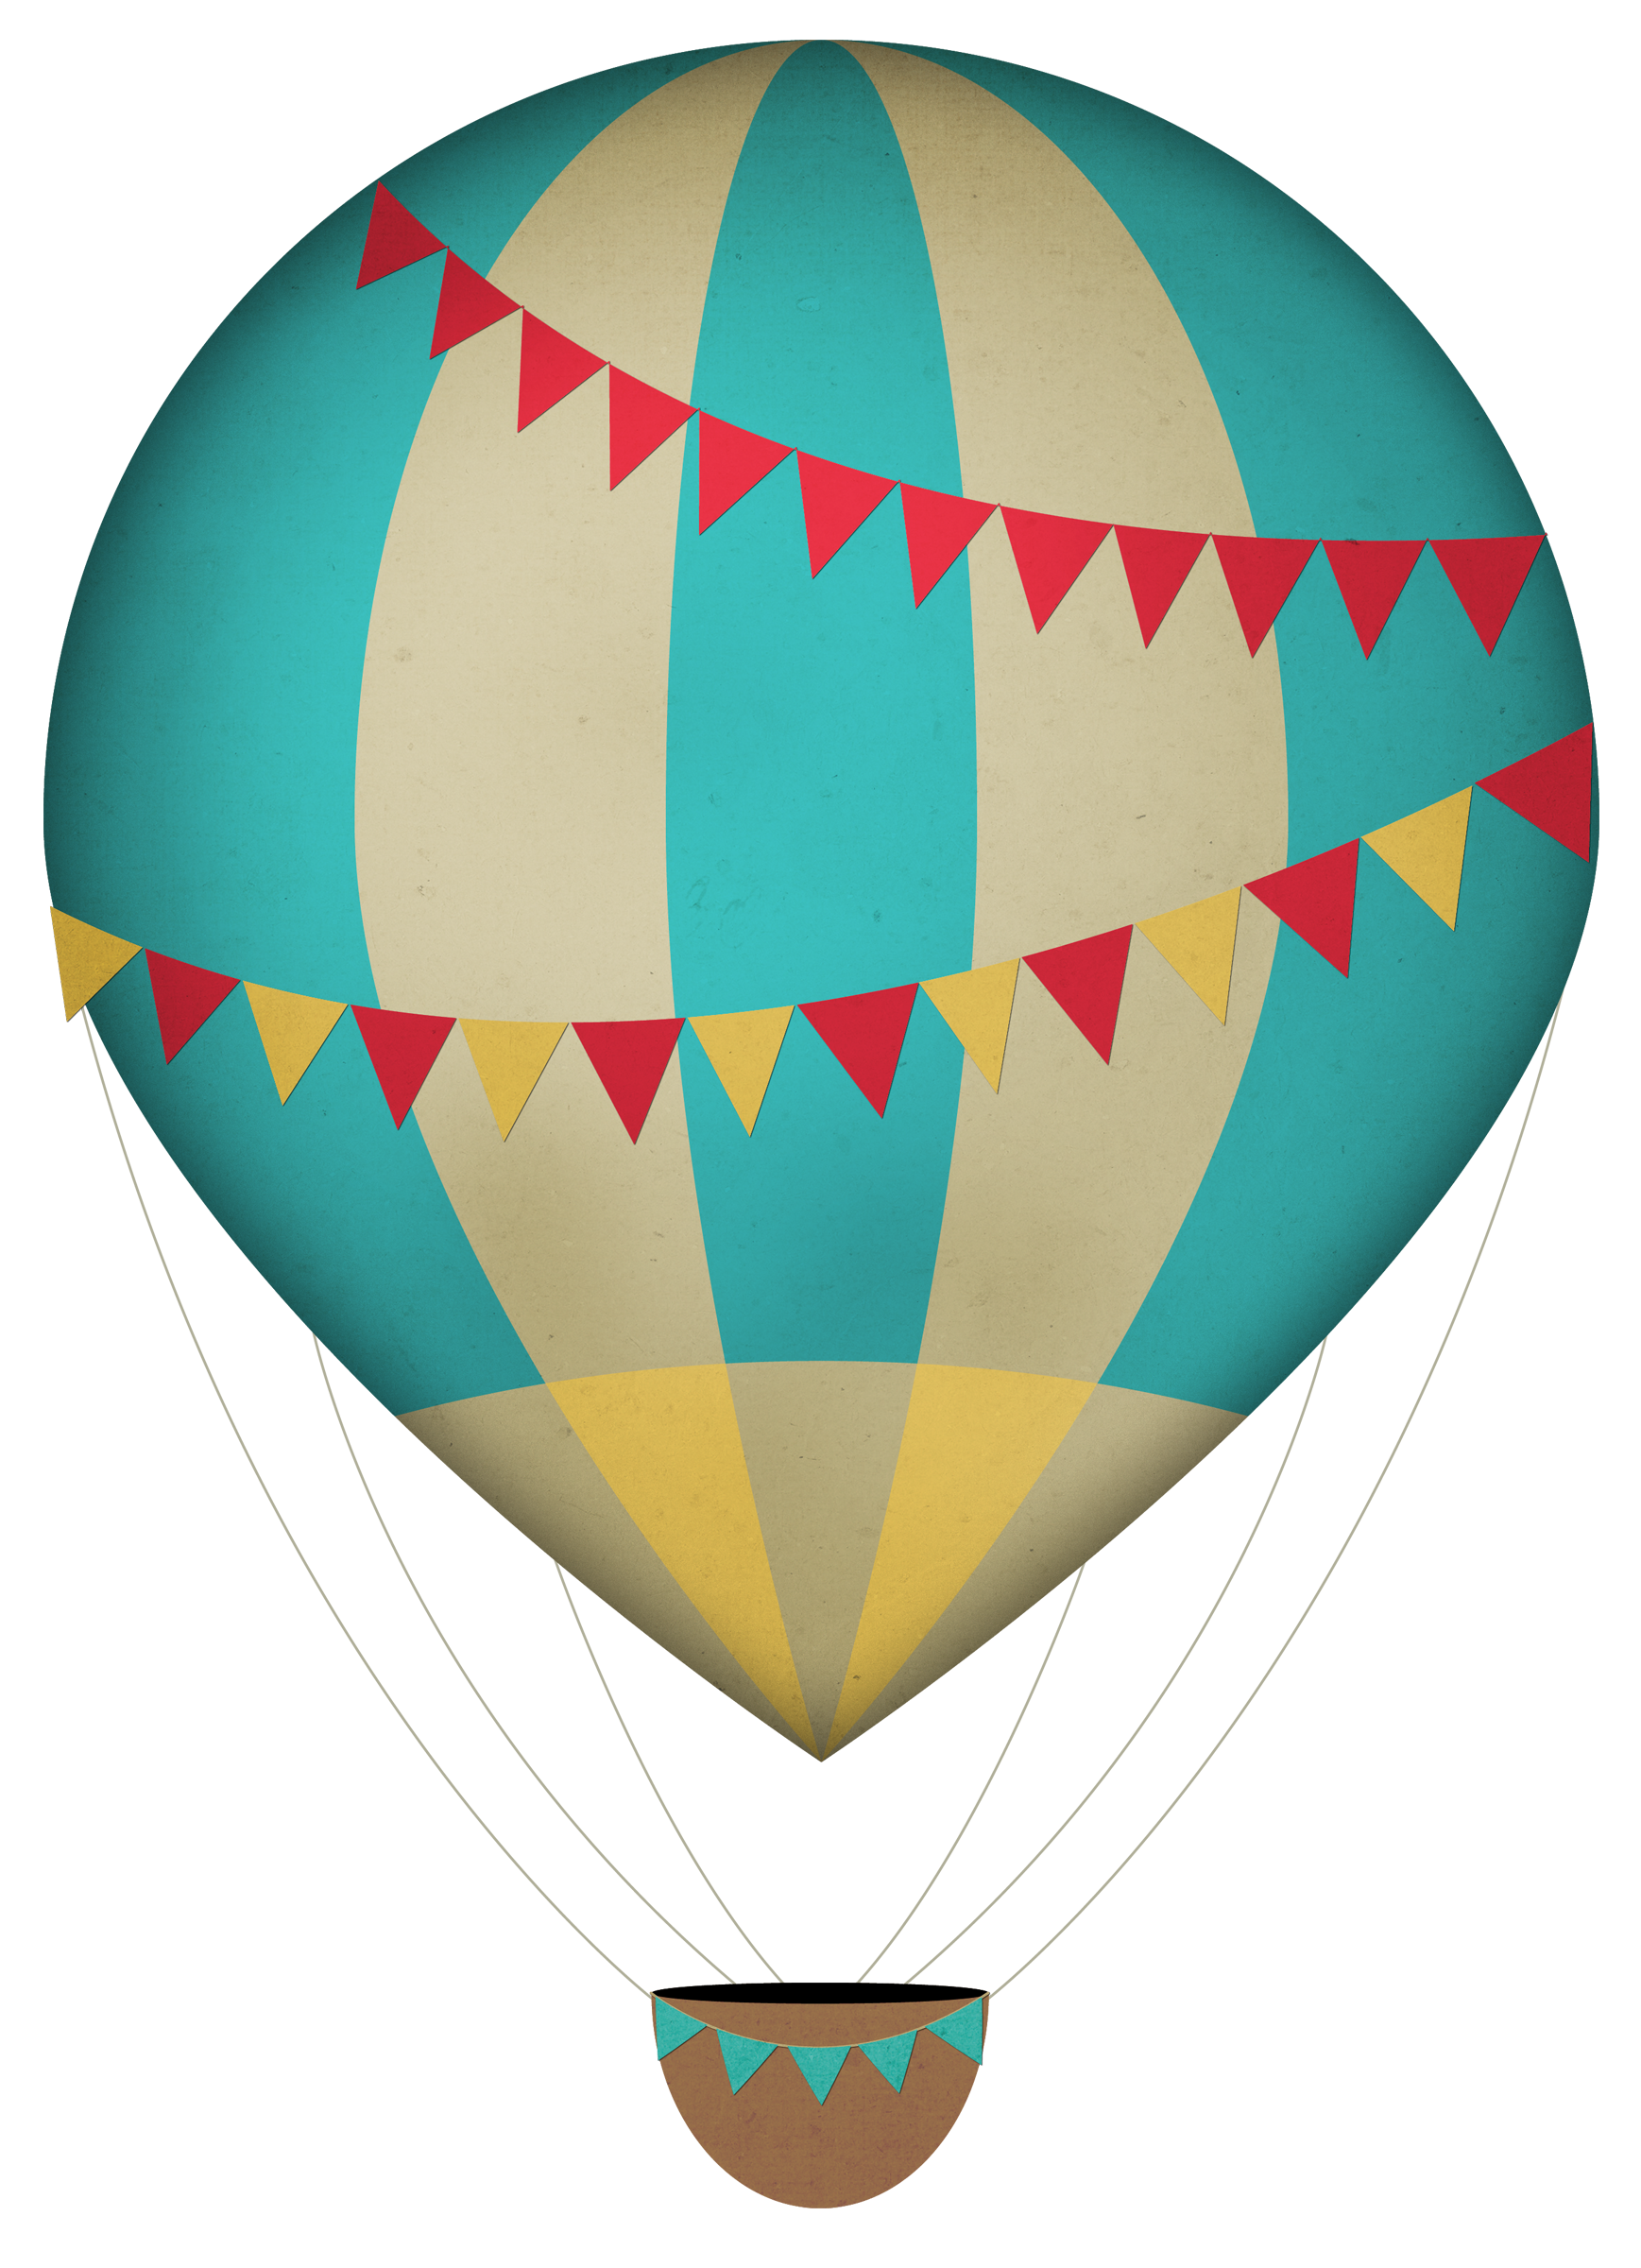 Hot balloon panda free. Air clipart vintage